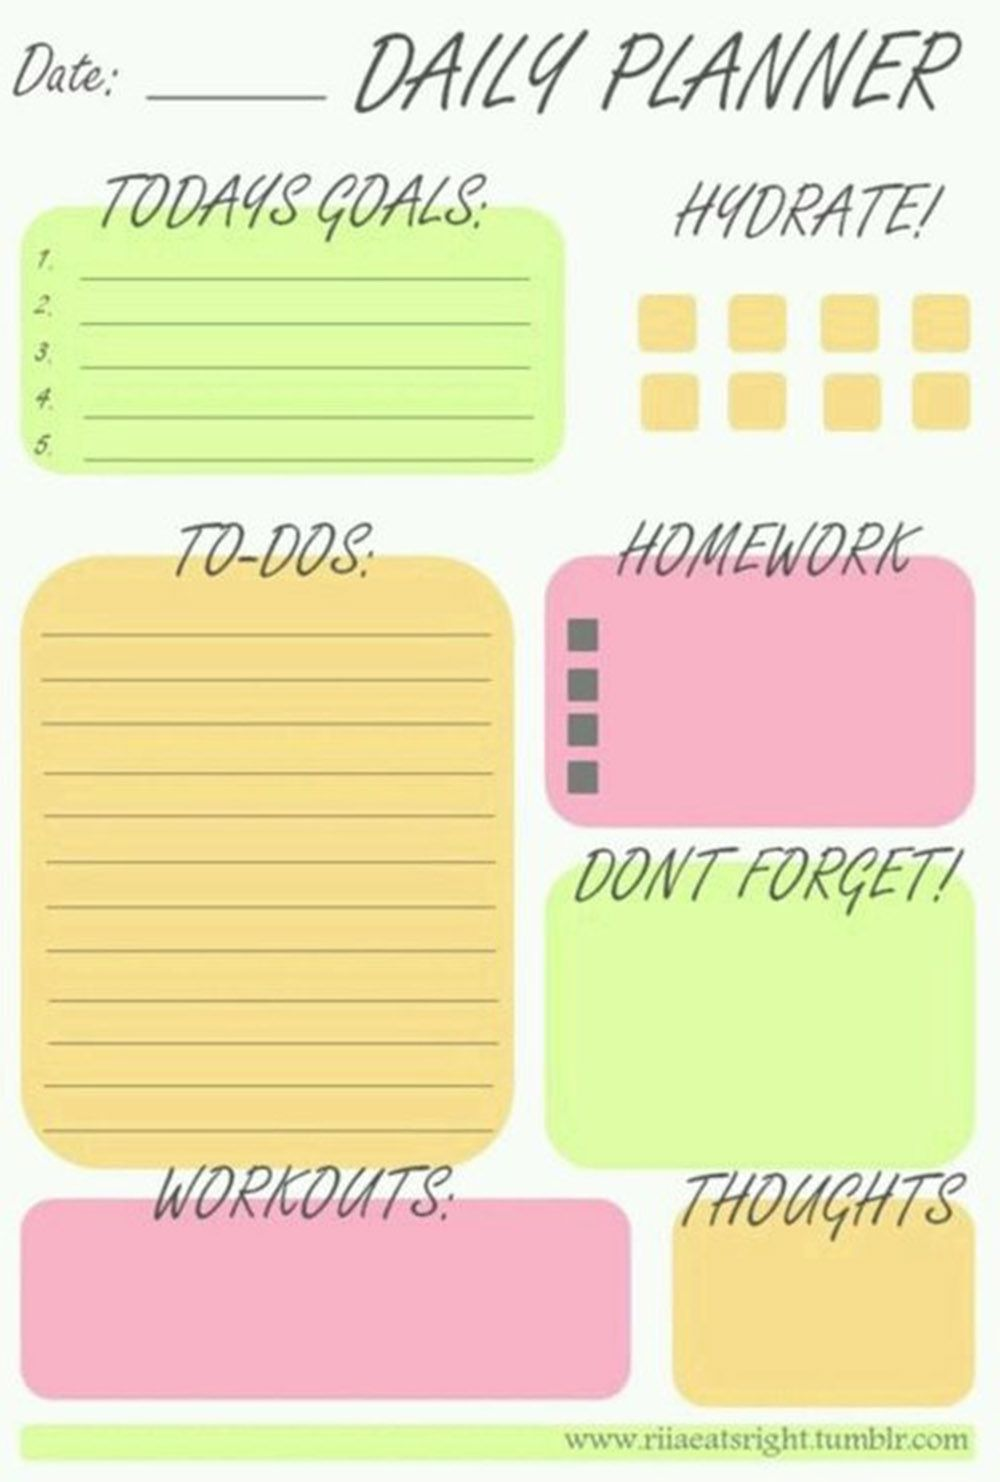 revision timetable, revision timetable template, best ways to revise, revision timetable maker,